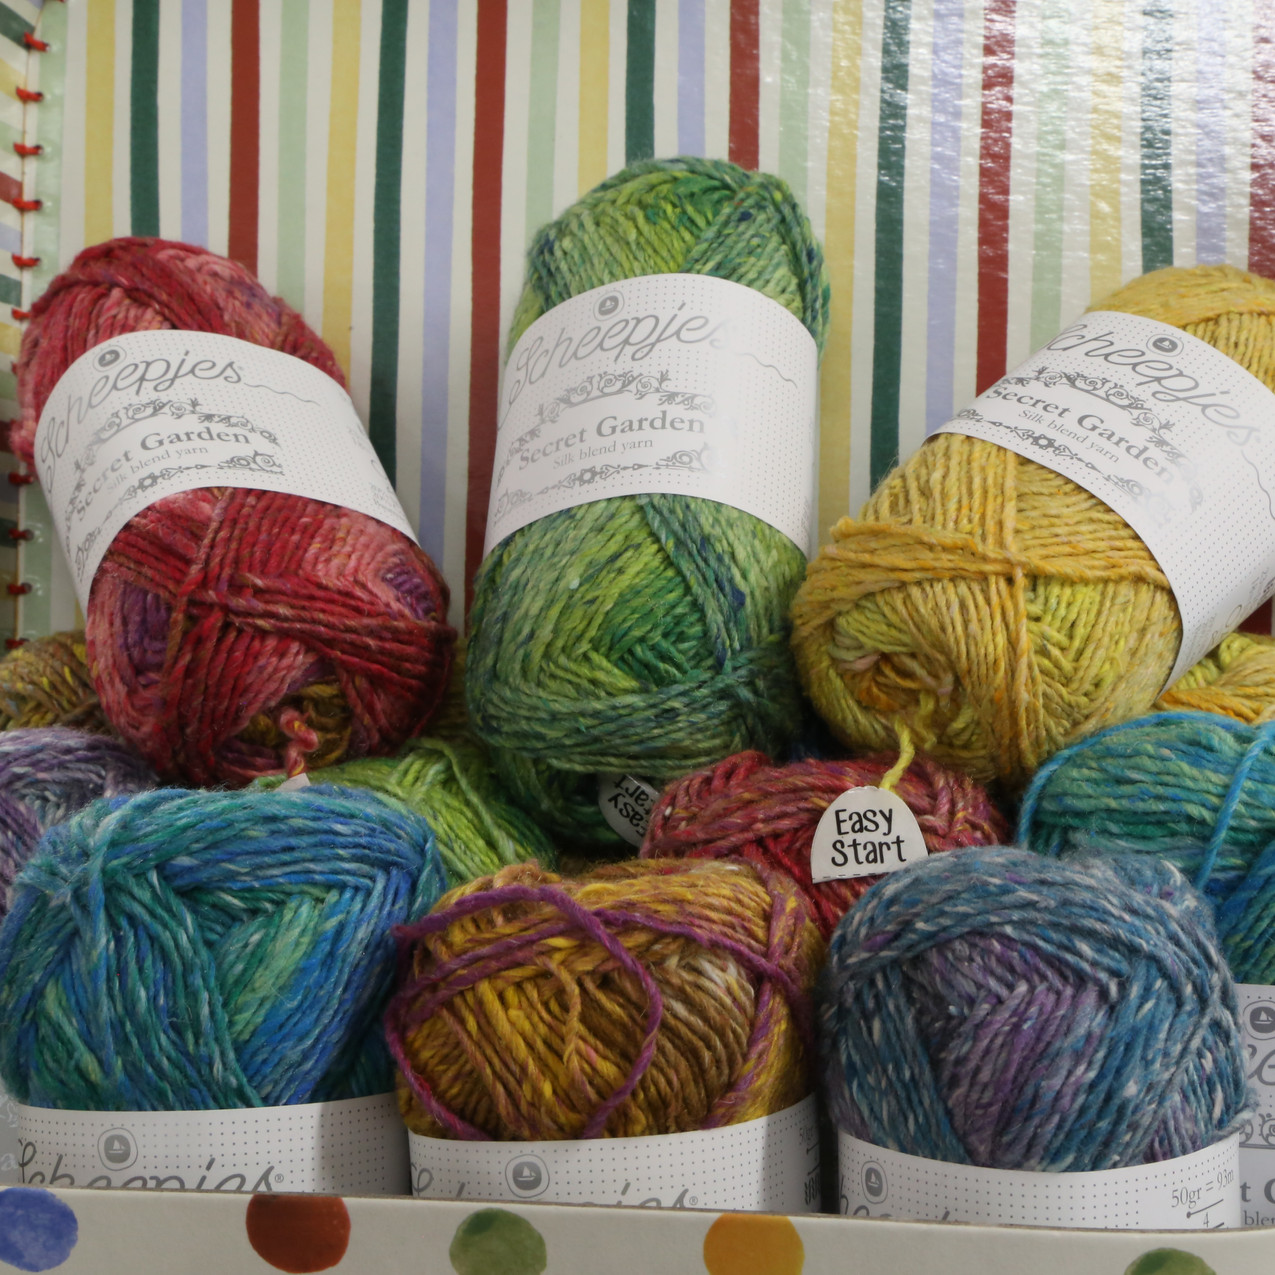 Sheepies secret garden wool